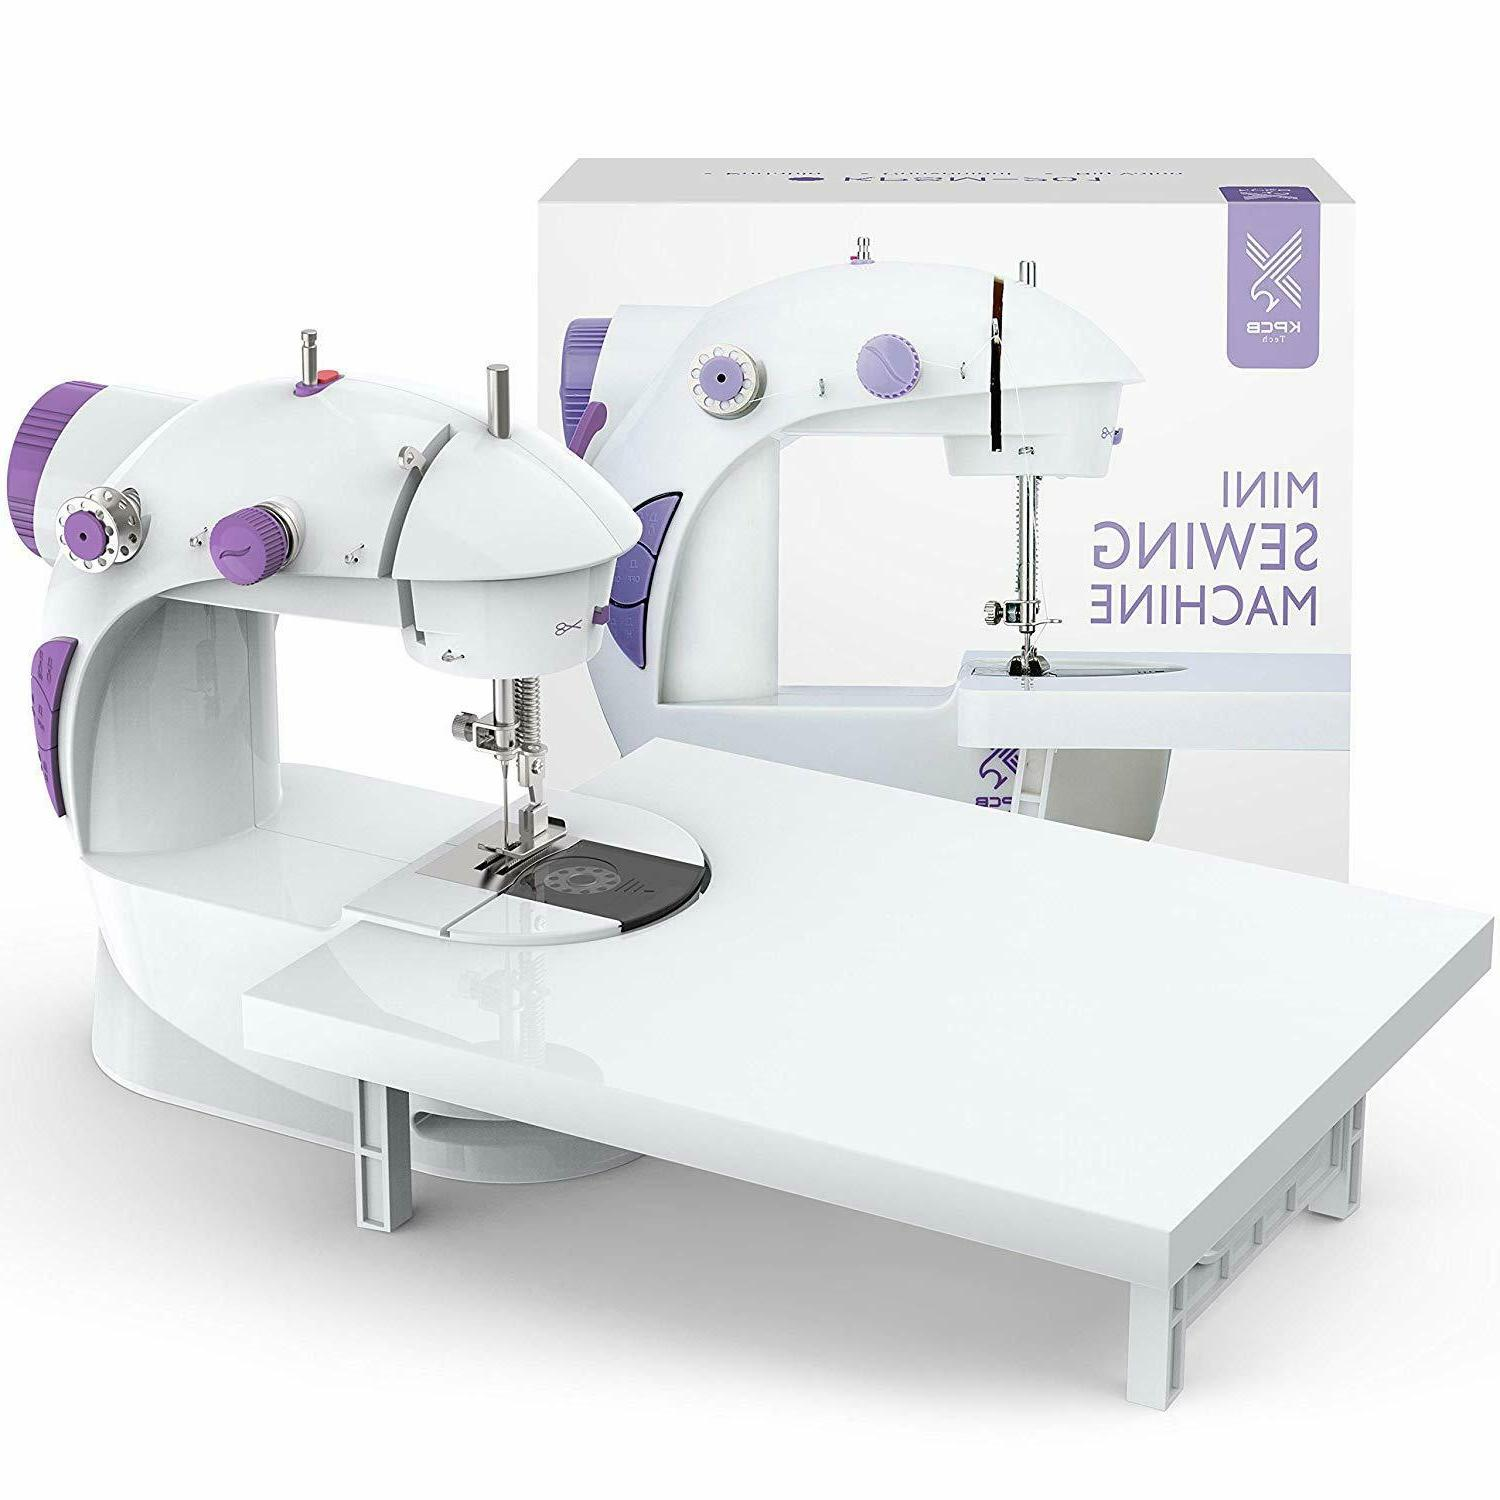 Portable Beginners Sewing Mending With Extension